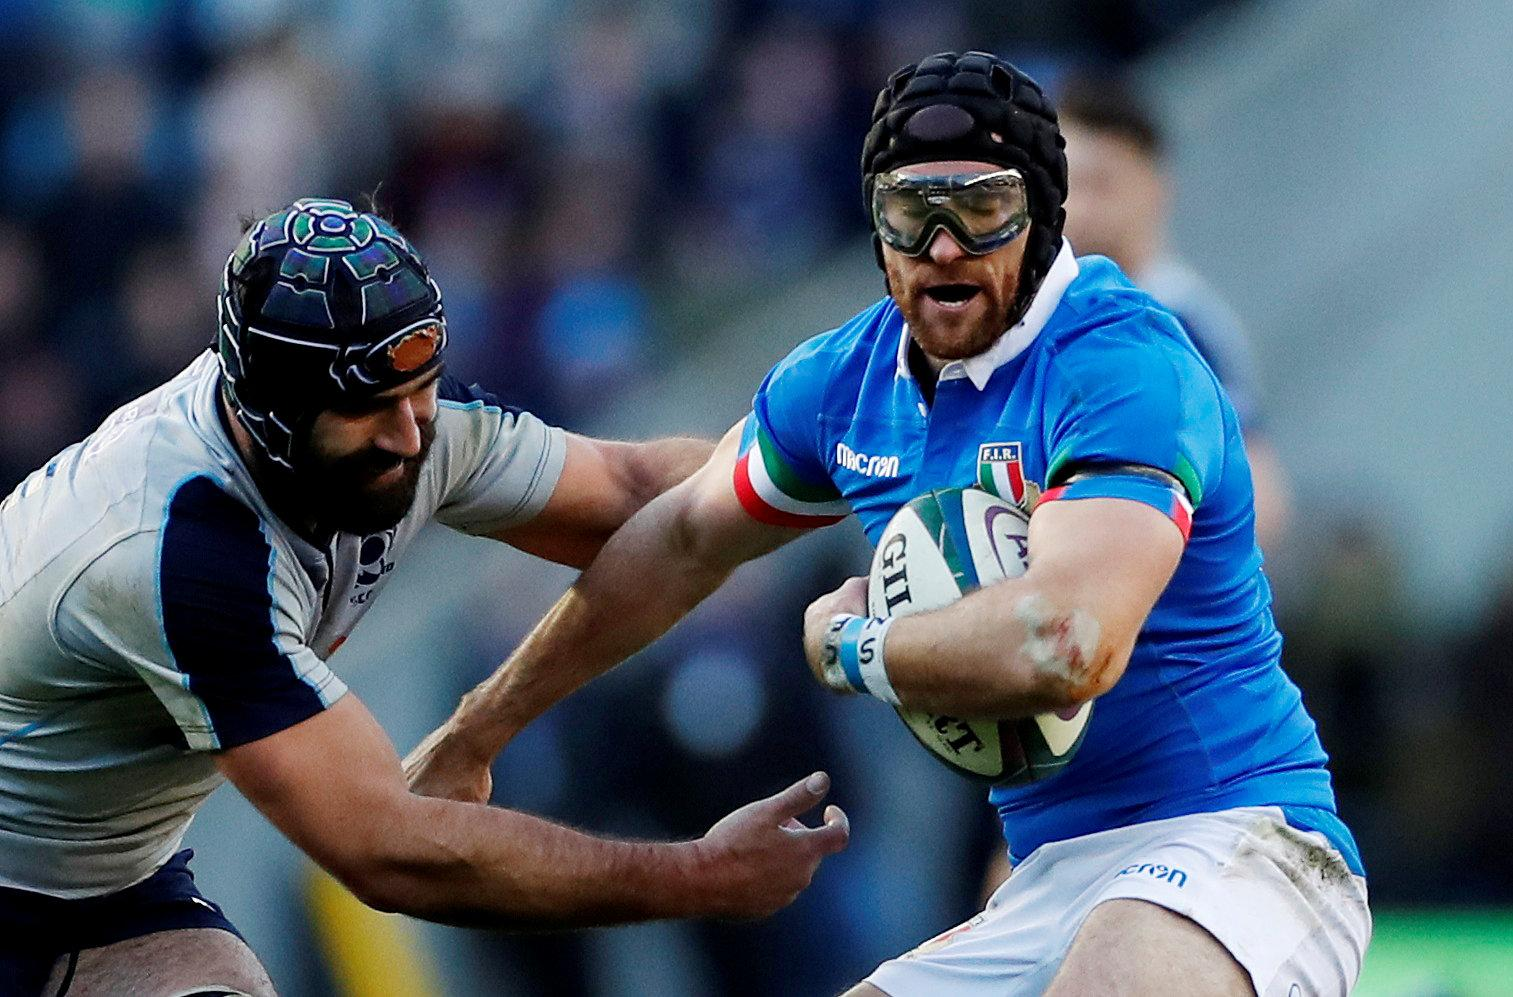 McKinley made his debut for Italy in late 2017